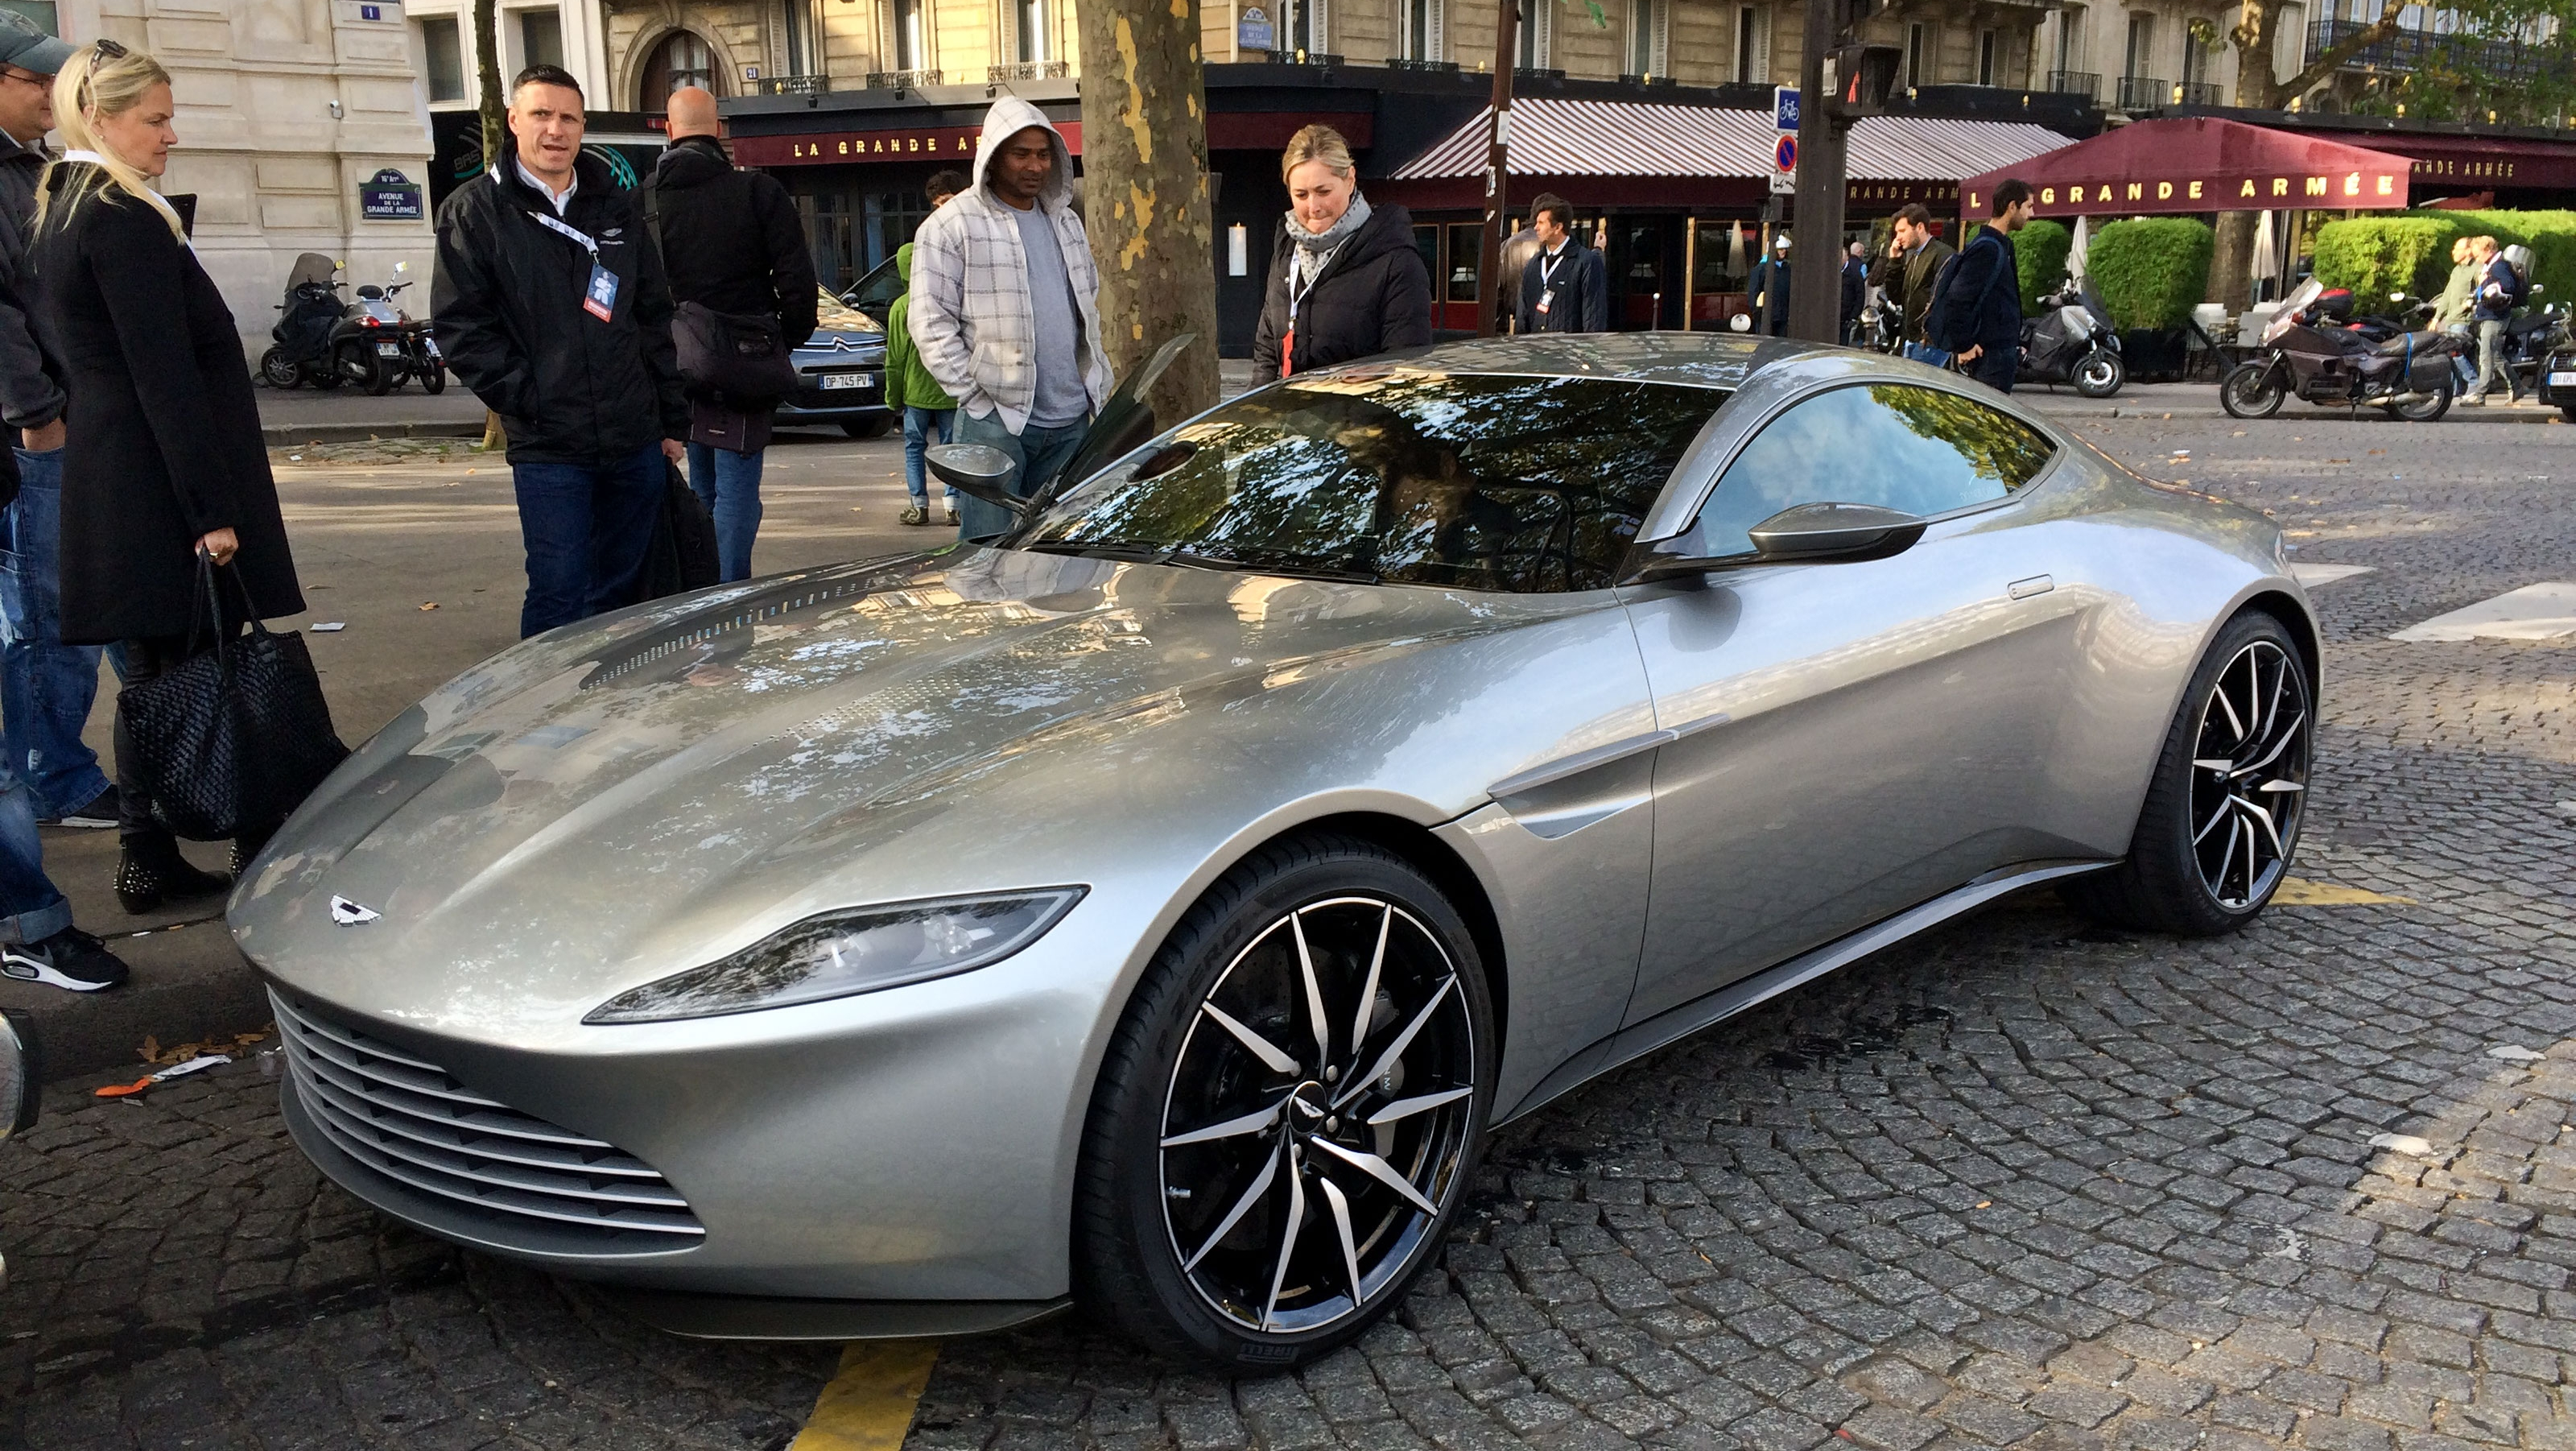 Permalink to Aston Martin Db10 Car Model